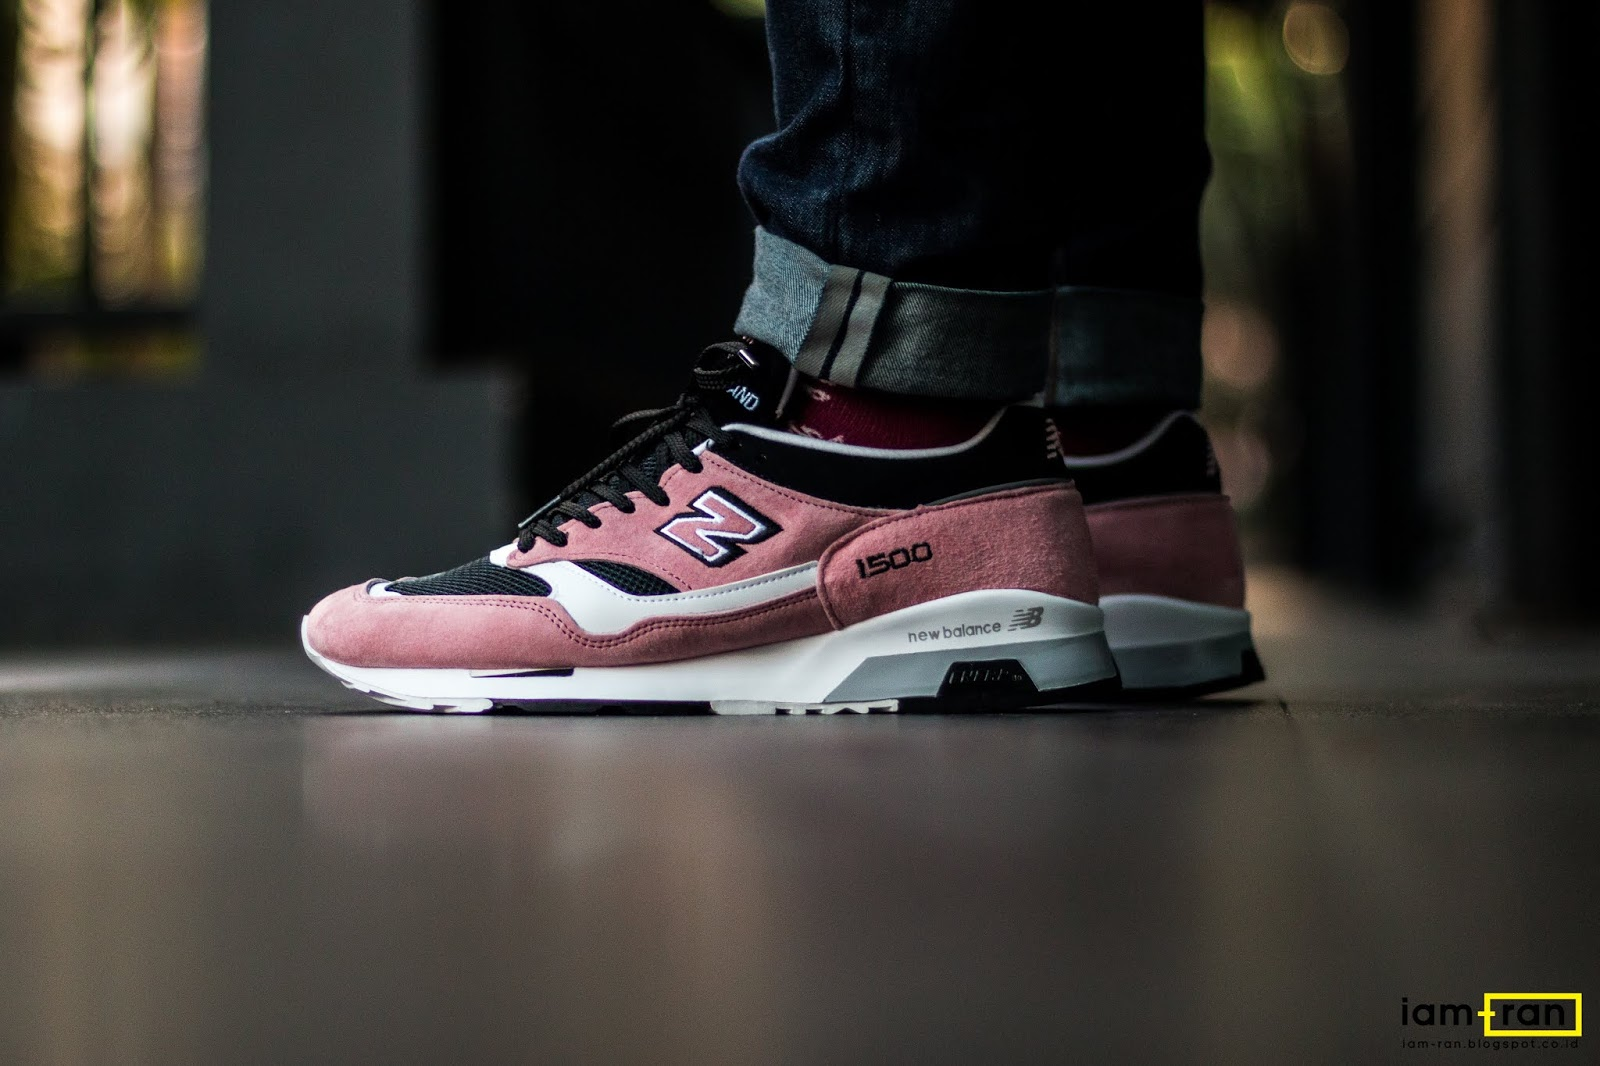 657690bf76e0 IAM-RAN  ON FEET   Ryan - NB 1500 MPK  Pastel Pink Easter Pack